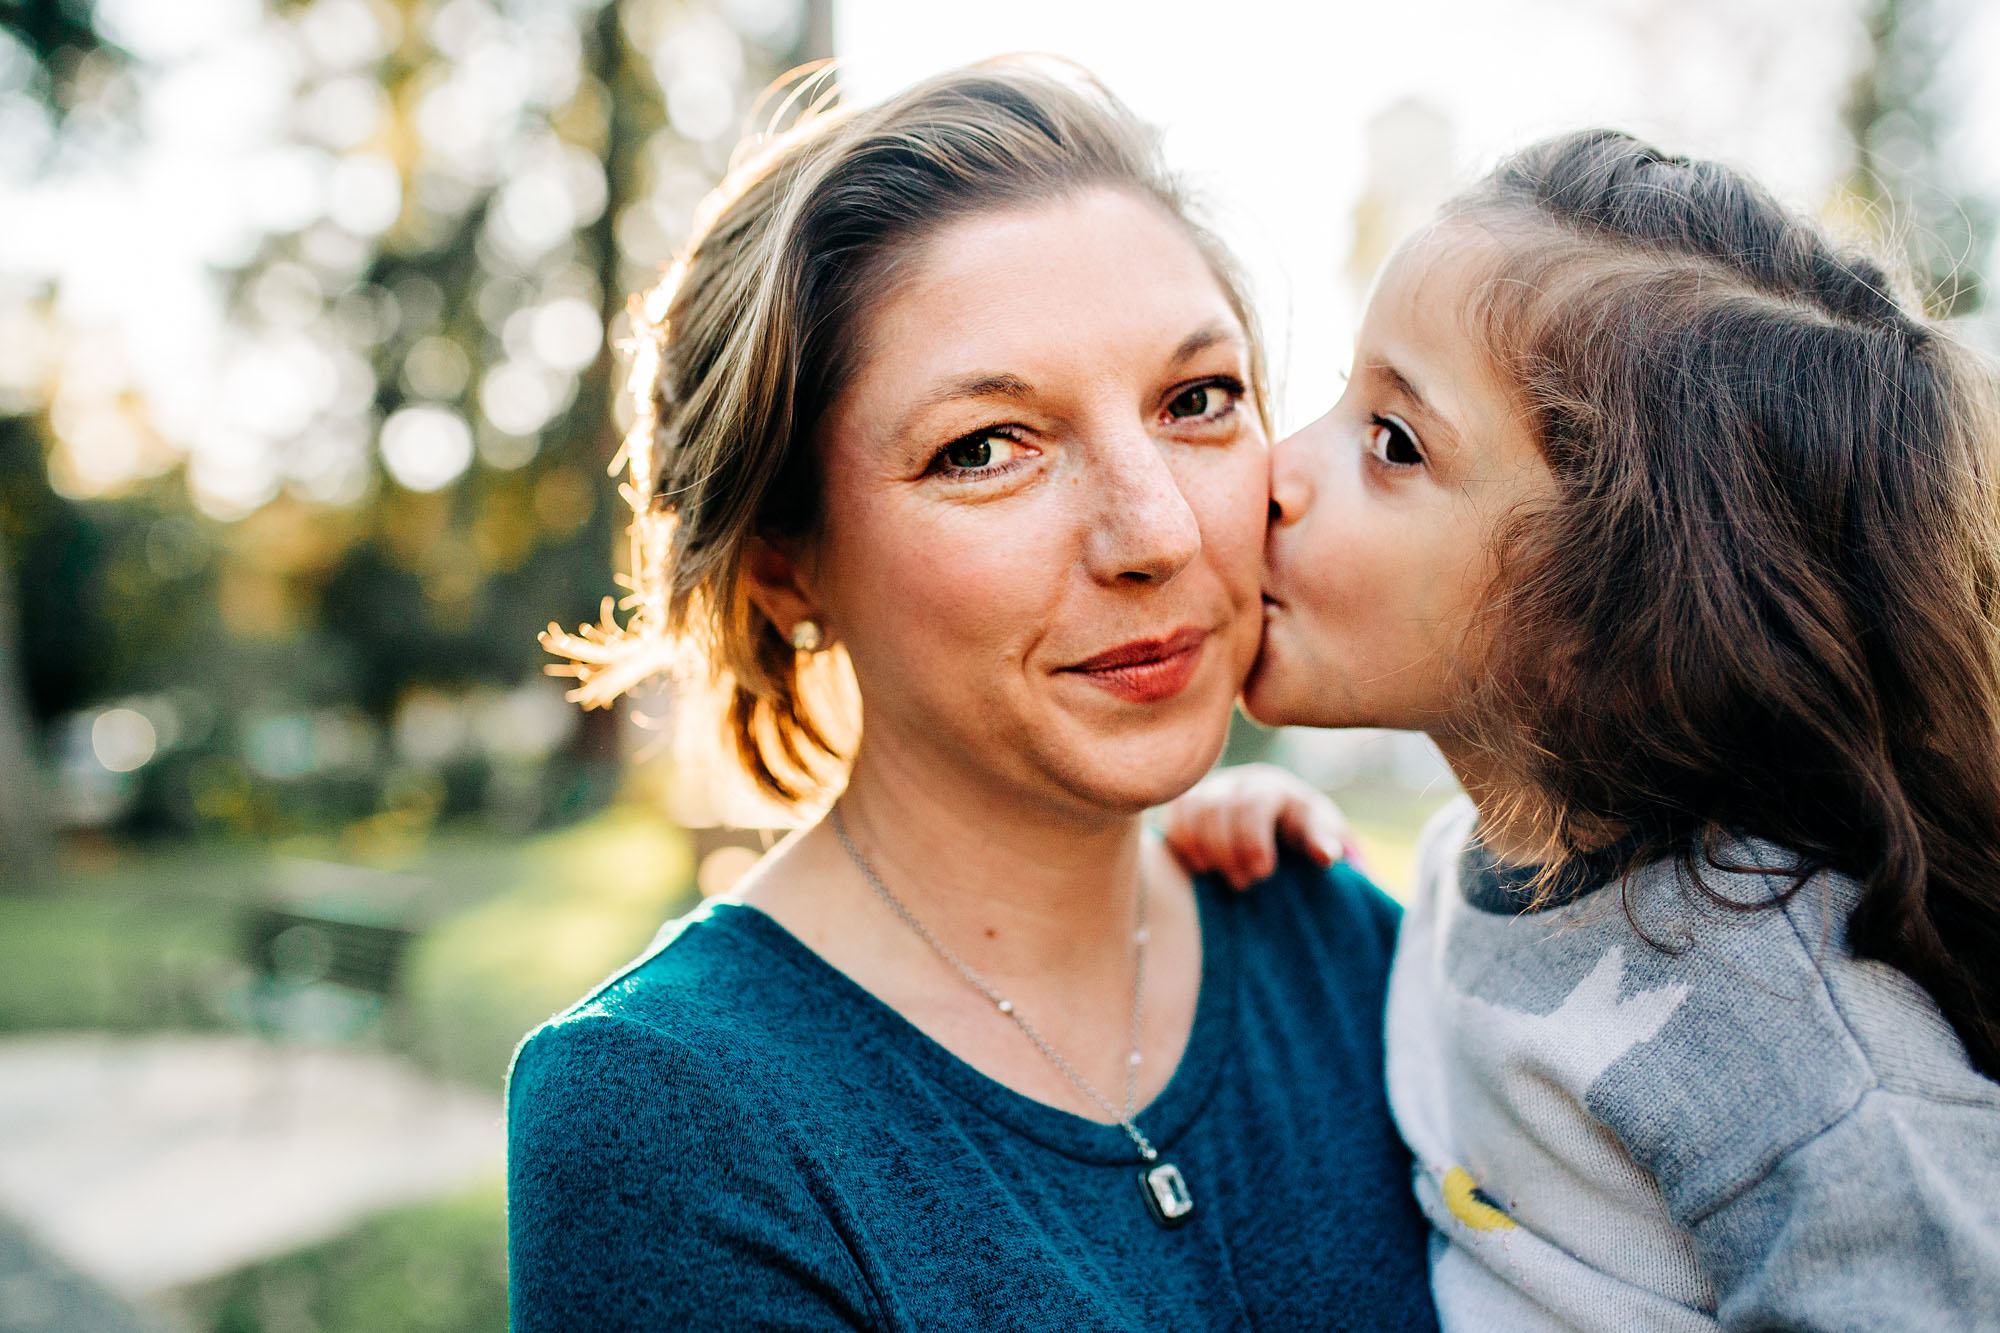 The connection between mother and daughter are captured during a lifestyle photo session with Amy Wright, a photographer based out of Roseville, California.